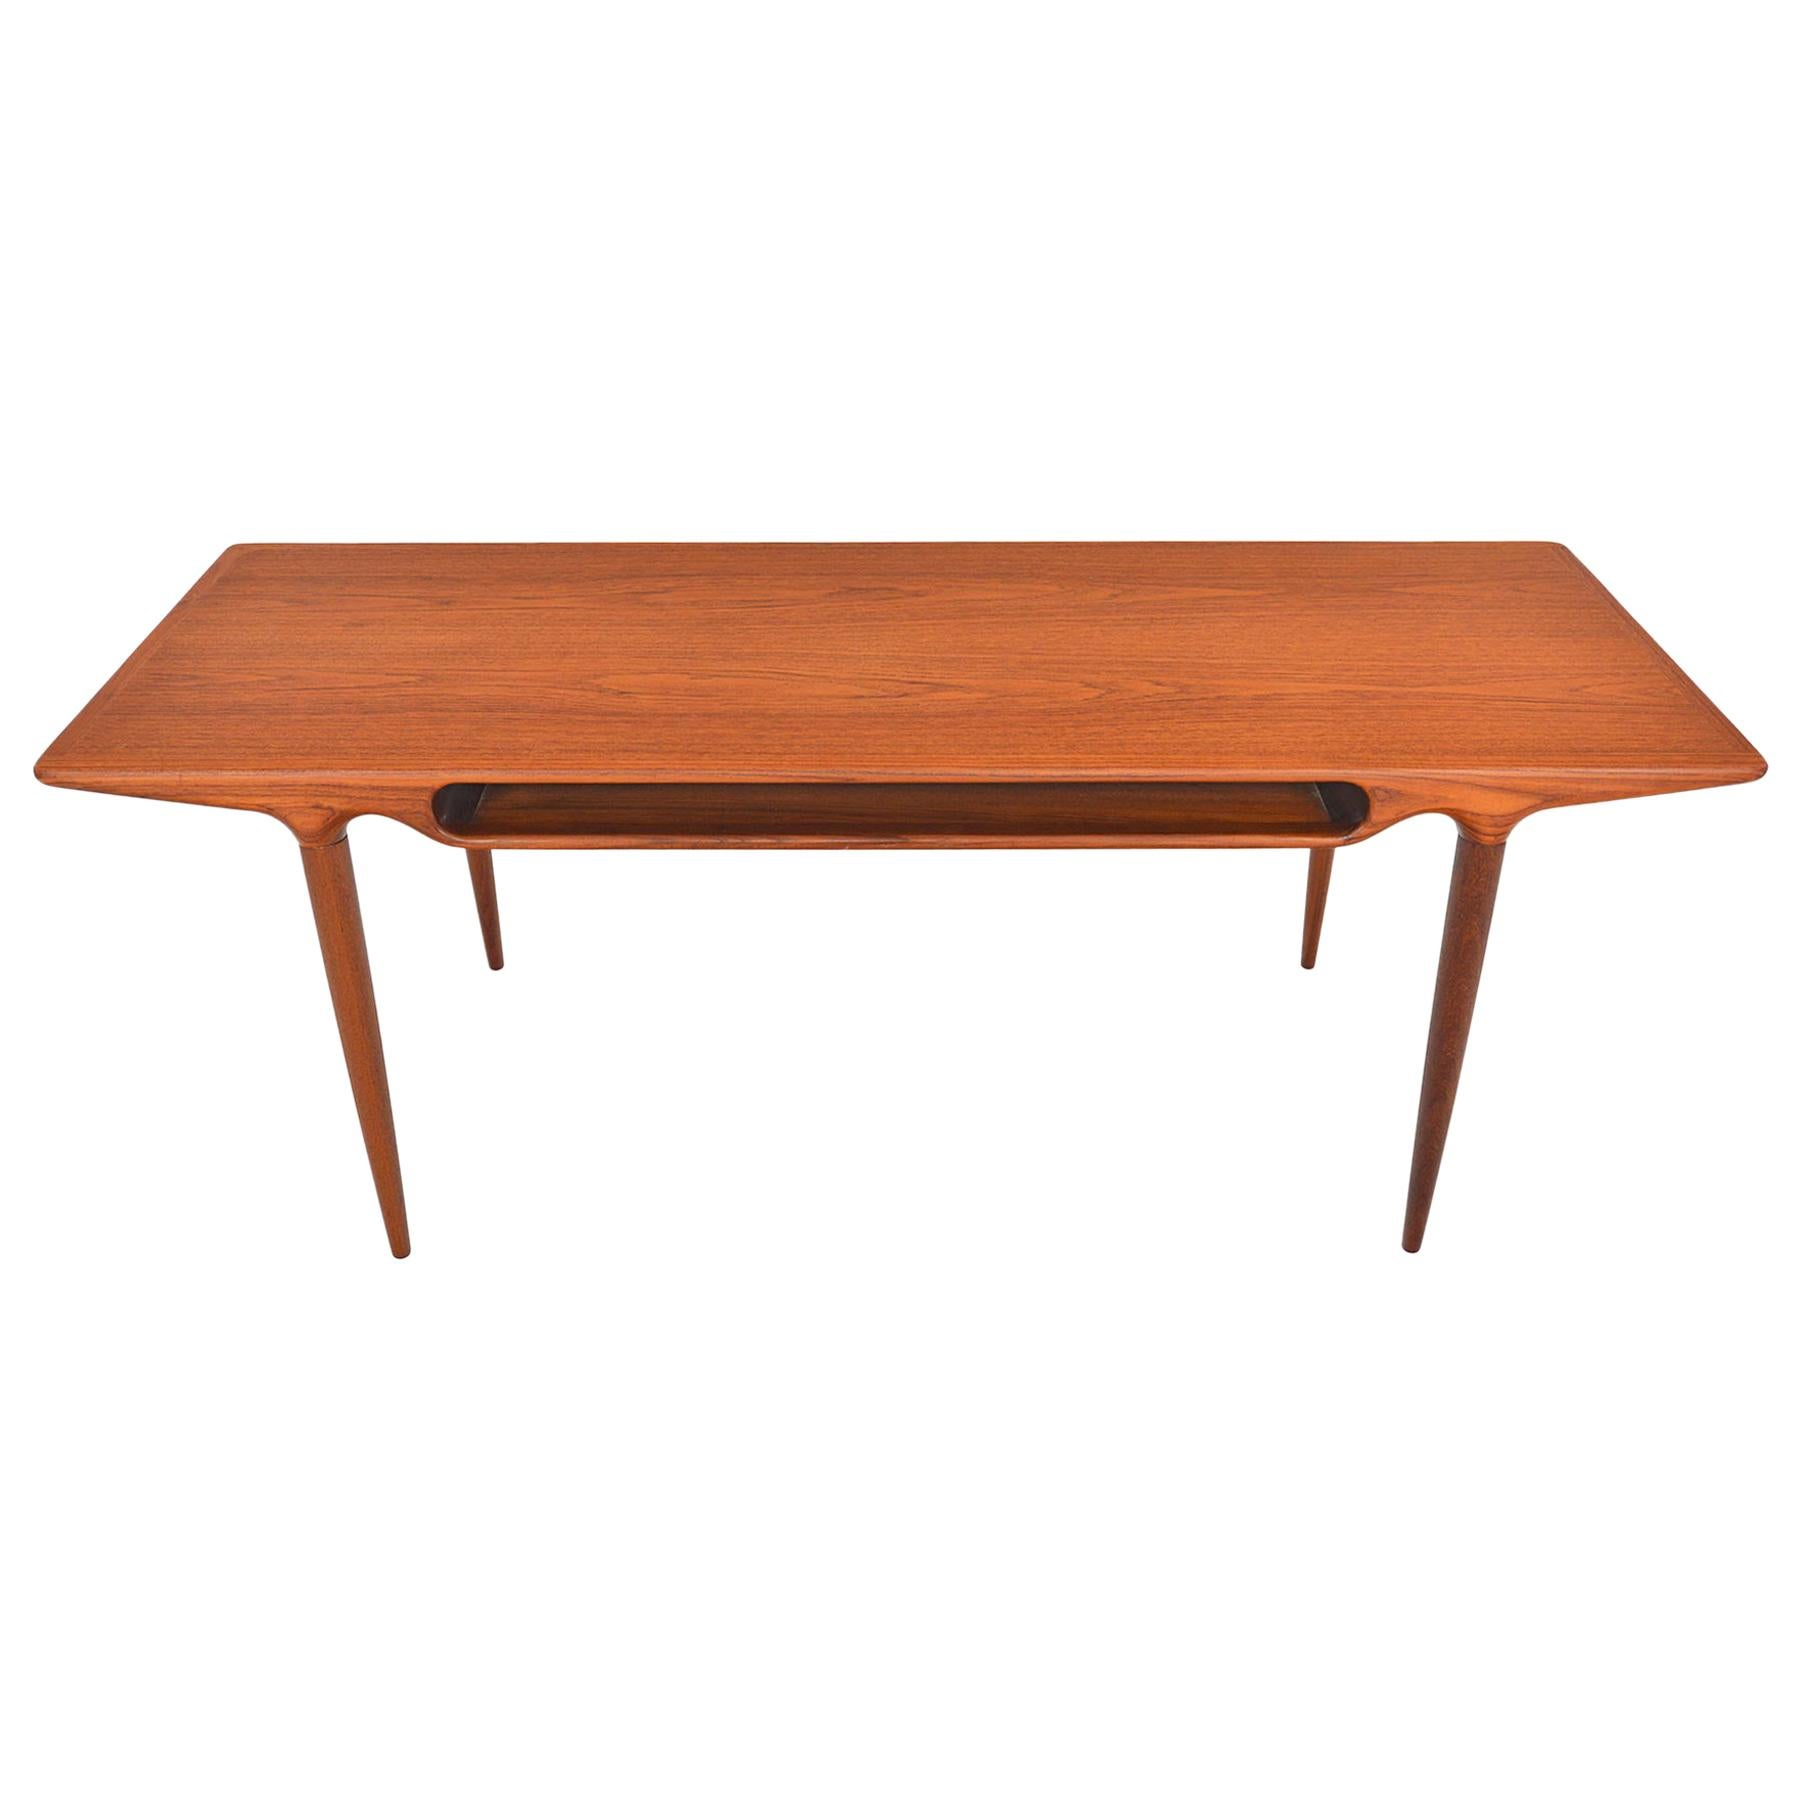 Johannes Andersen for CFC Teak Coffee Table with Storage